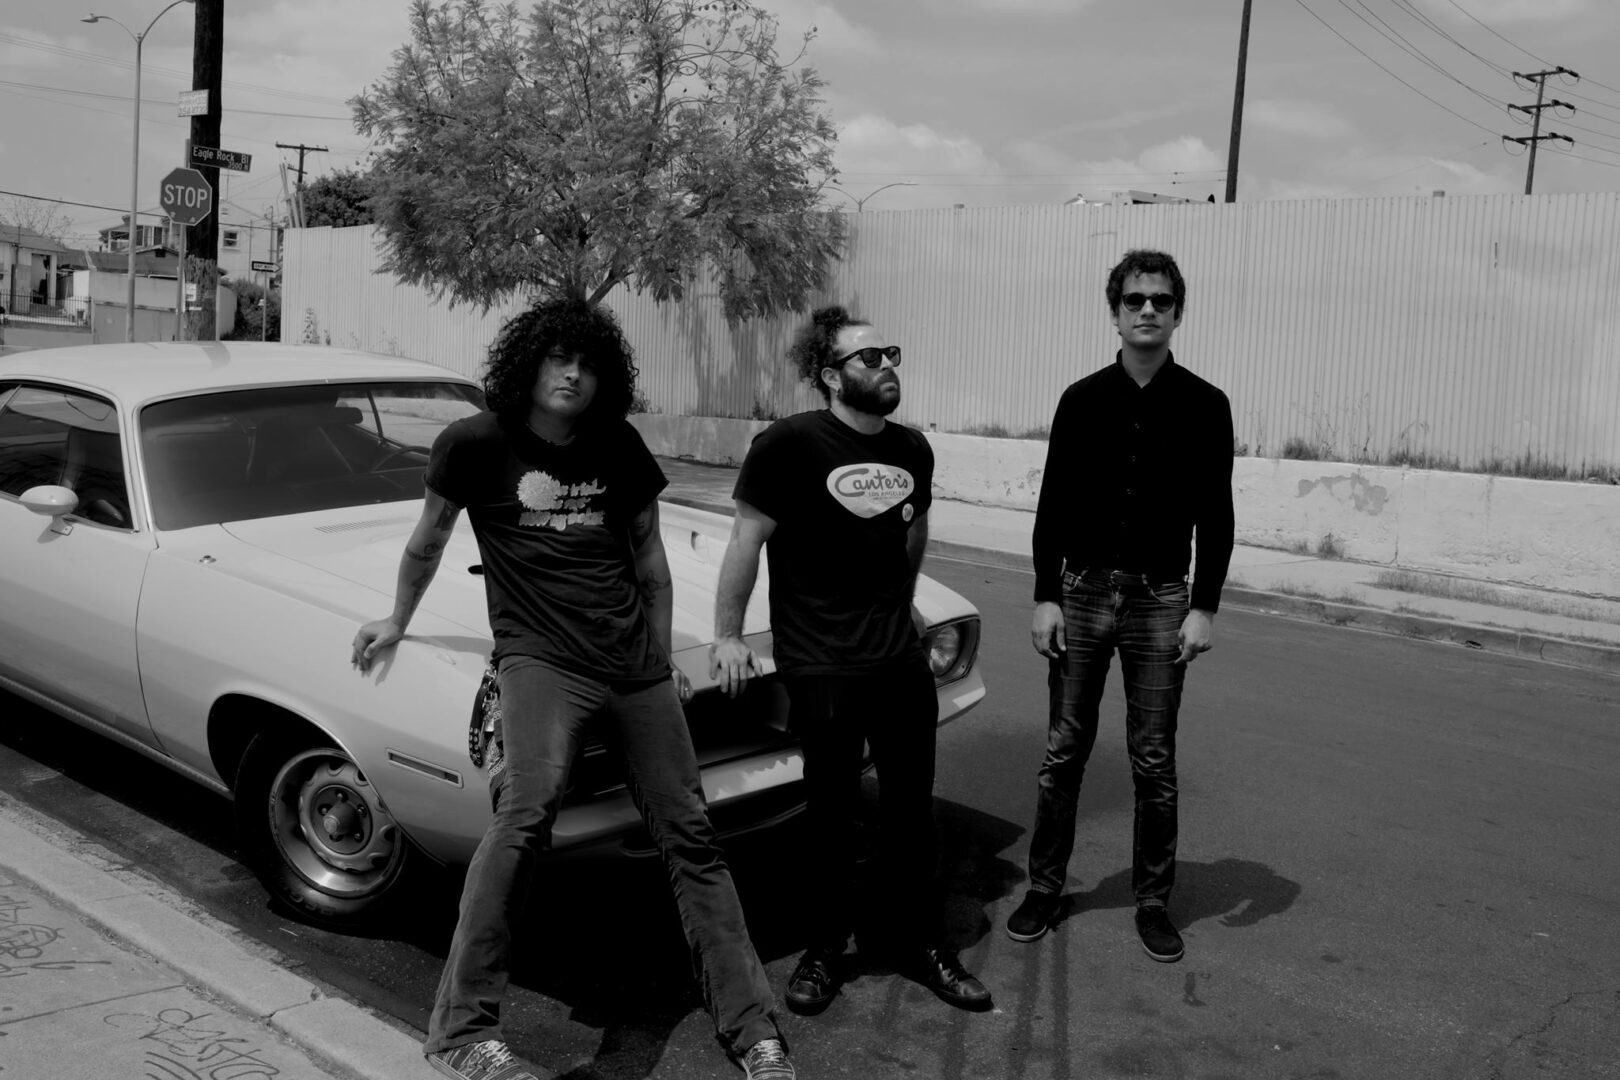 Antemasque Announces Tour Dates in North America, Japan & Australia